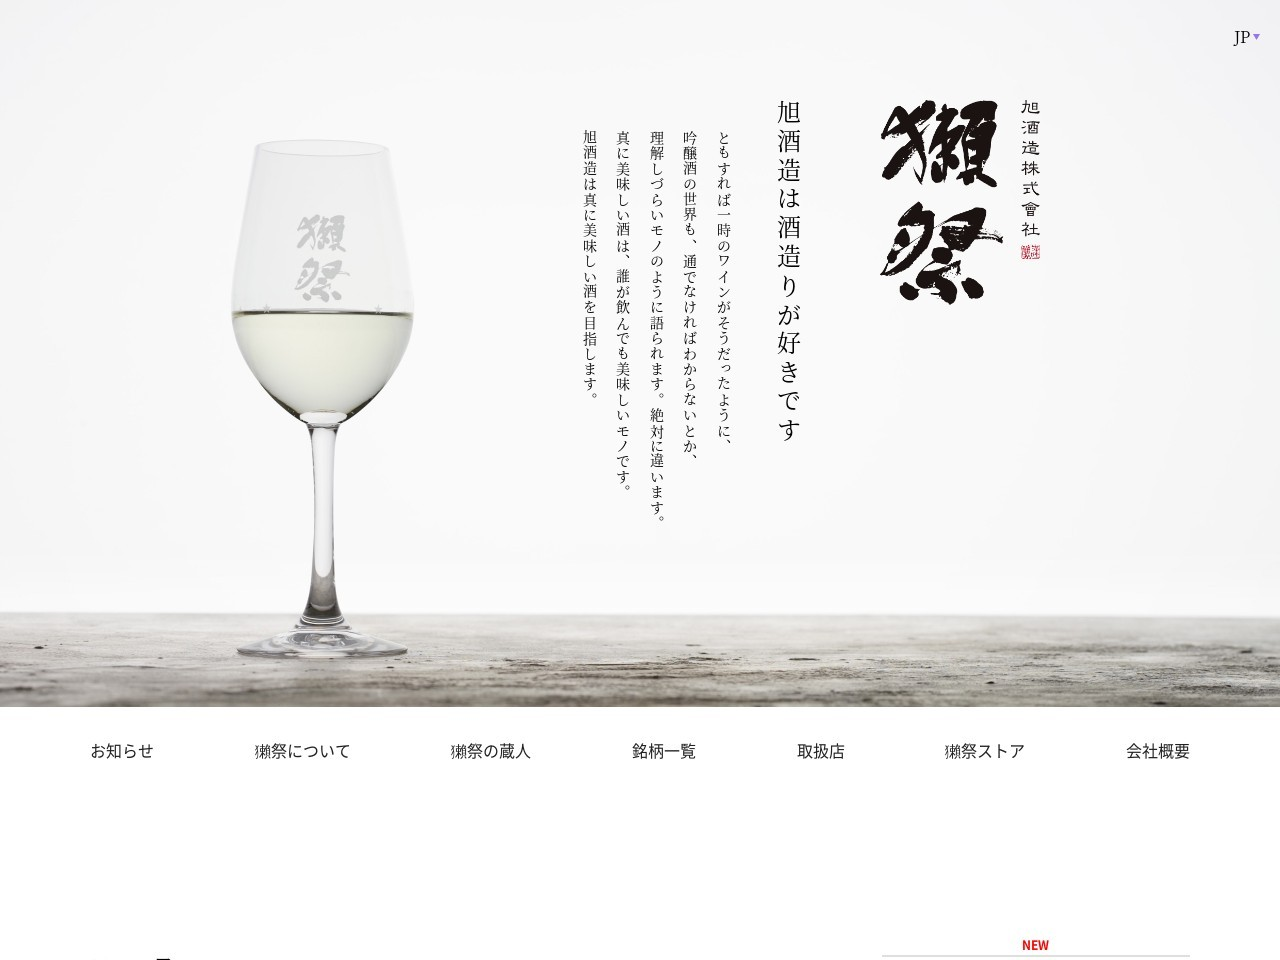 獺祭の蔵元|旭酒造株式会社 / Dassai Official Web Site.Asahishuzo CO.,LTD.